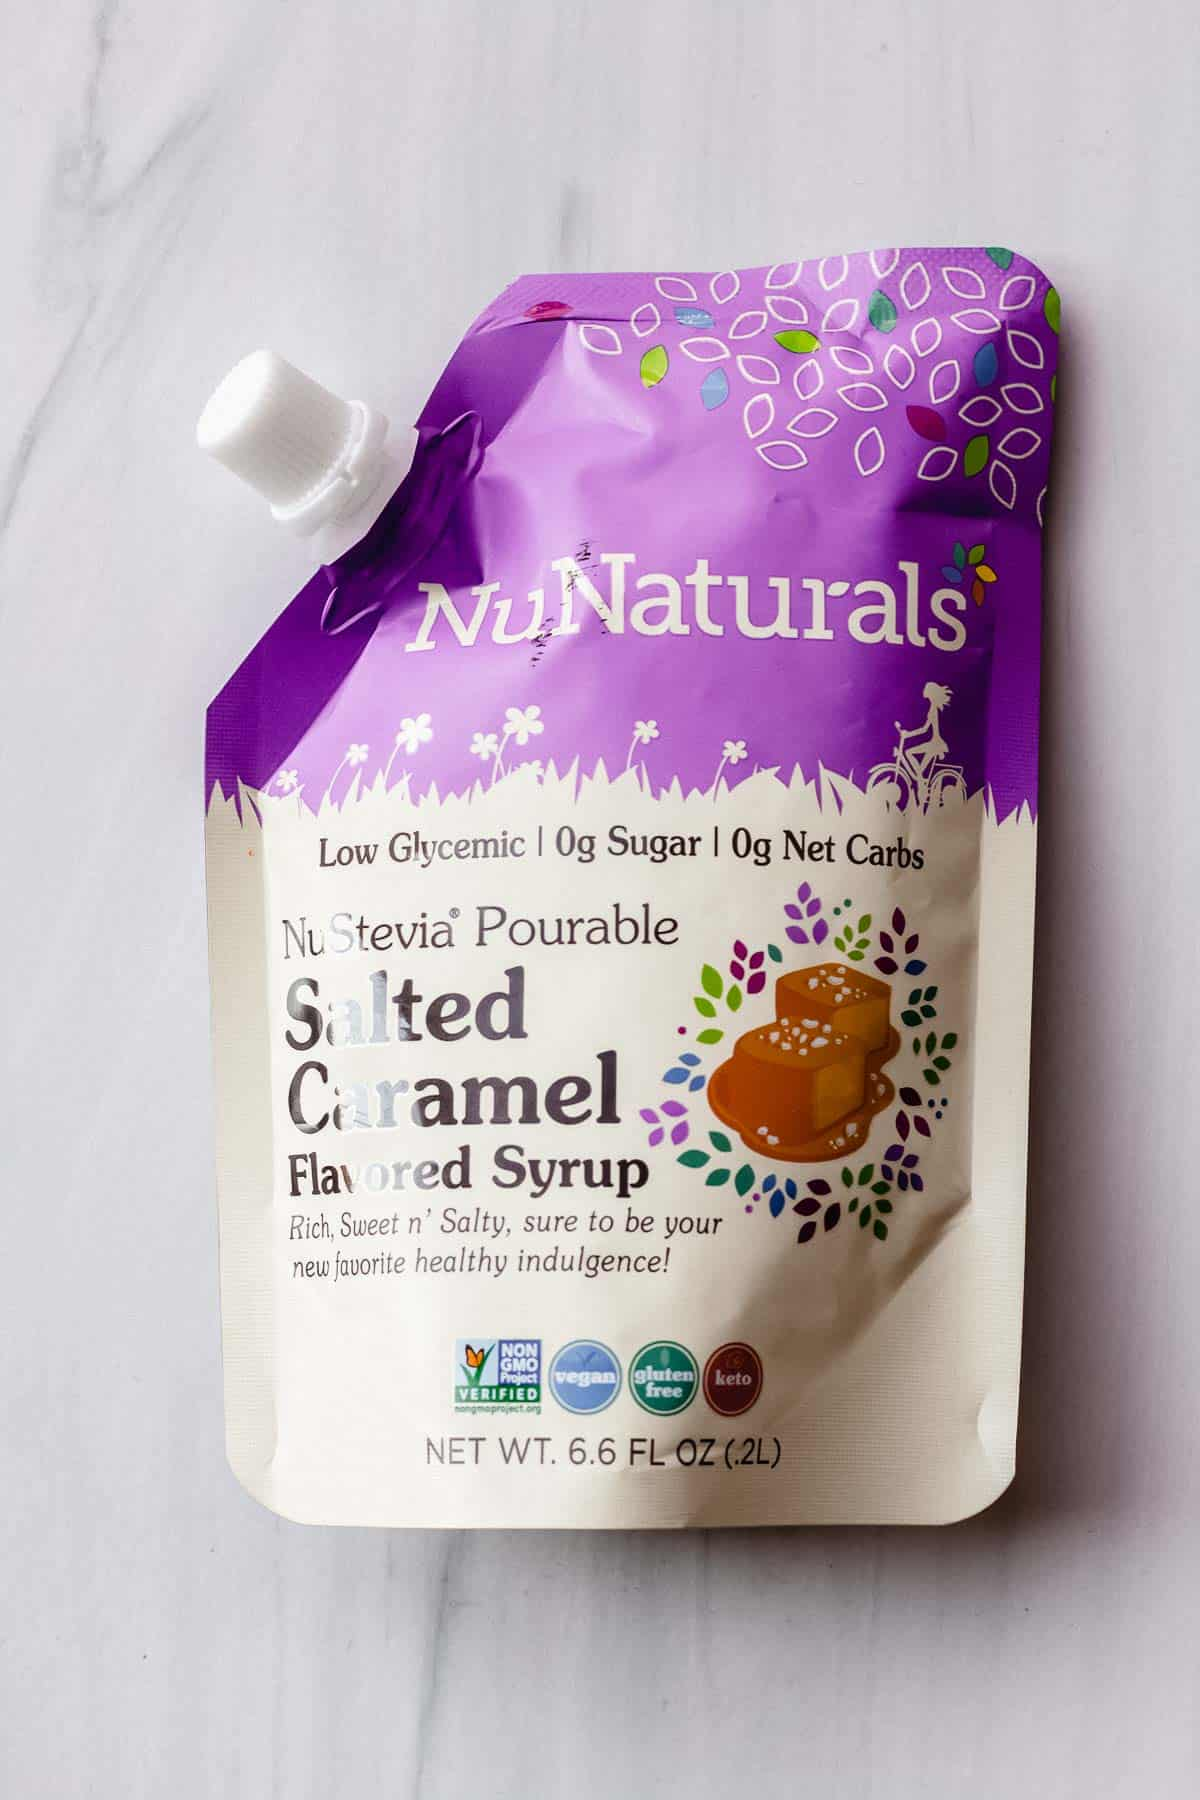 NuNaturals Salted Caramel syrup on a white background